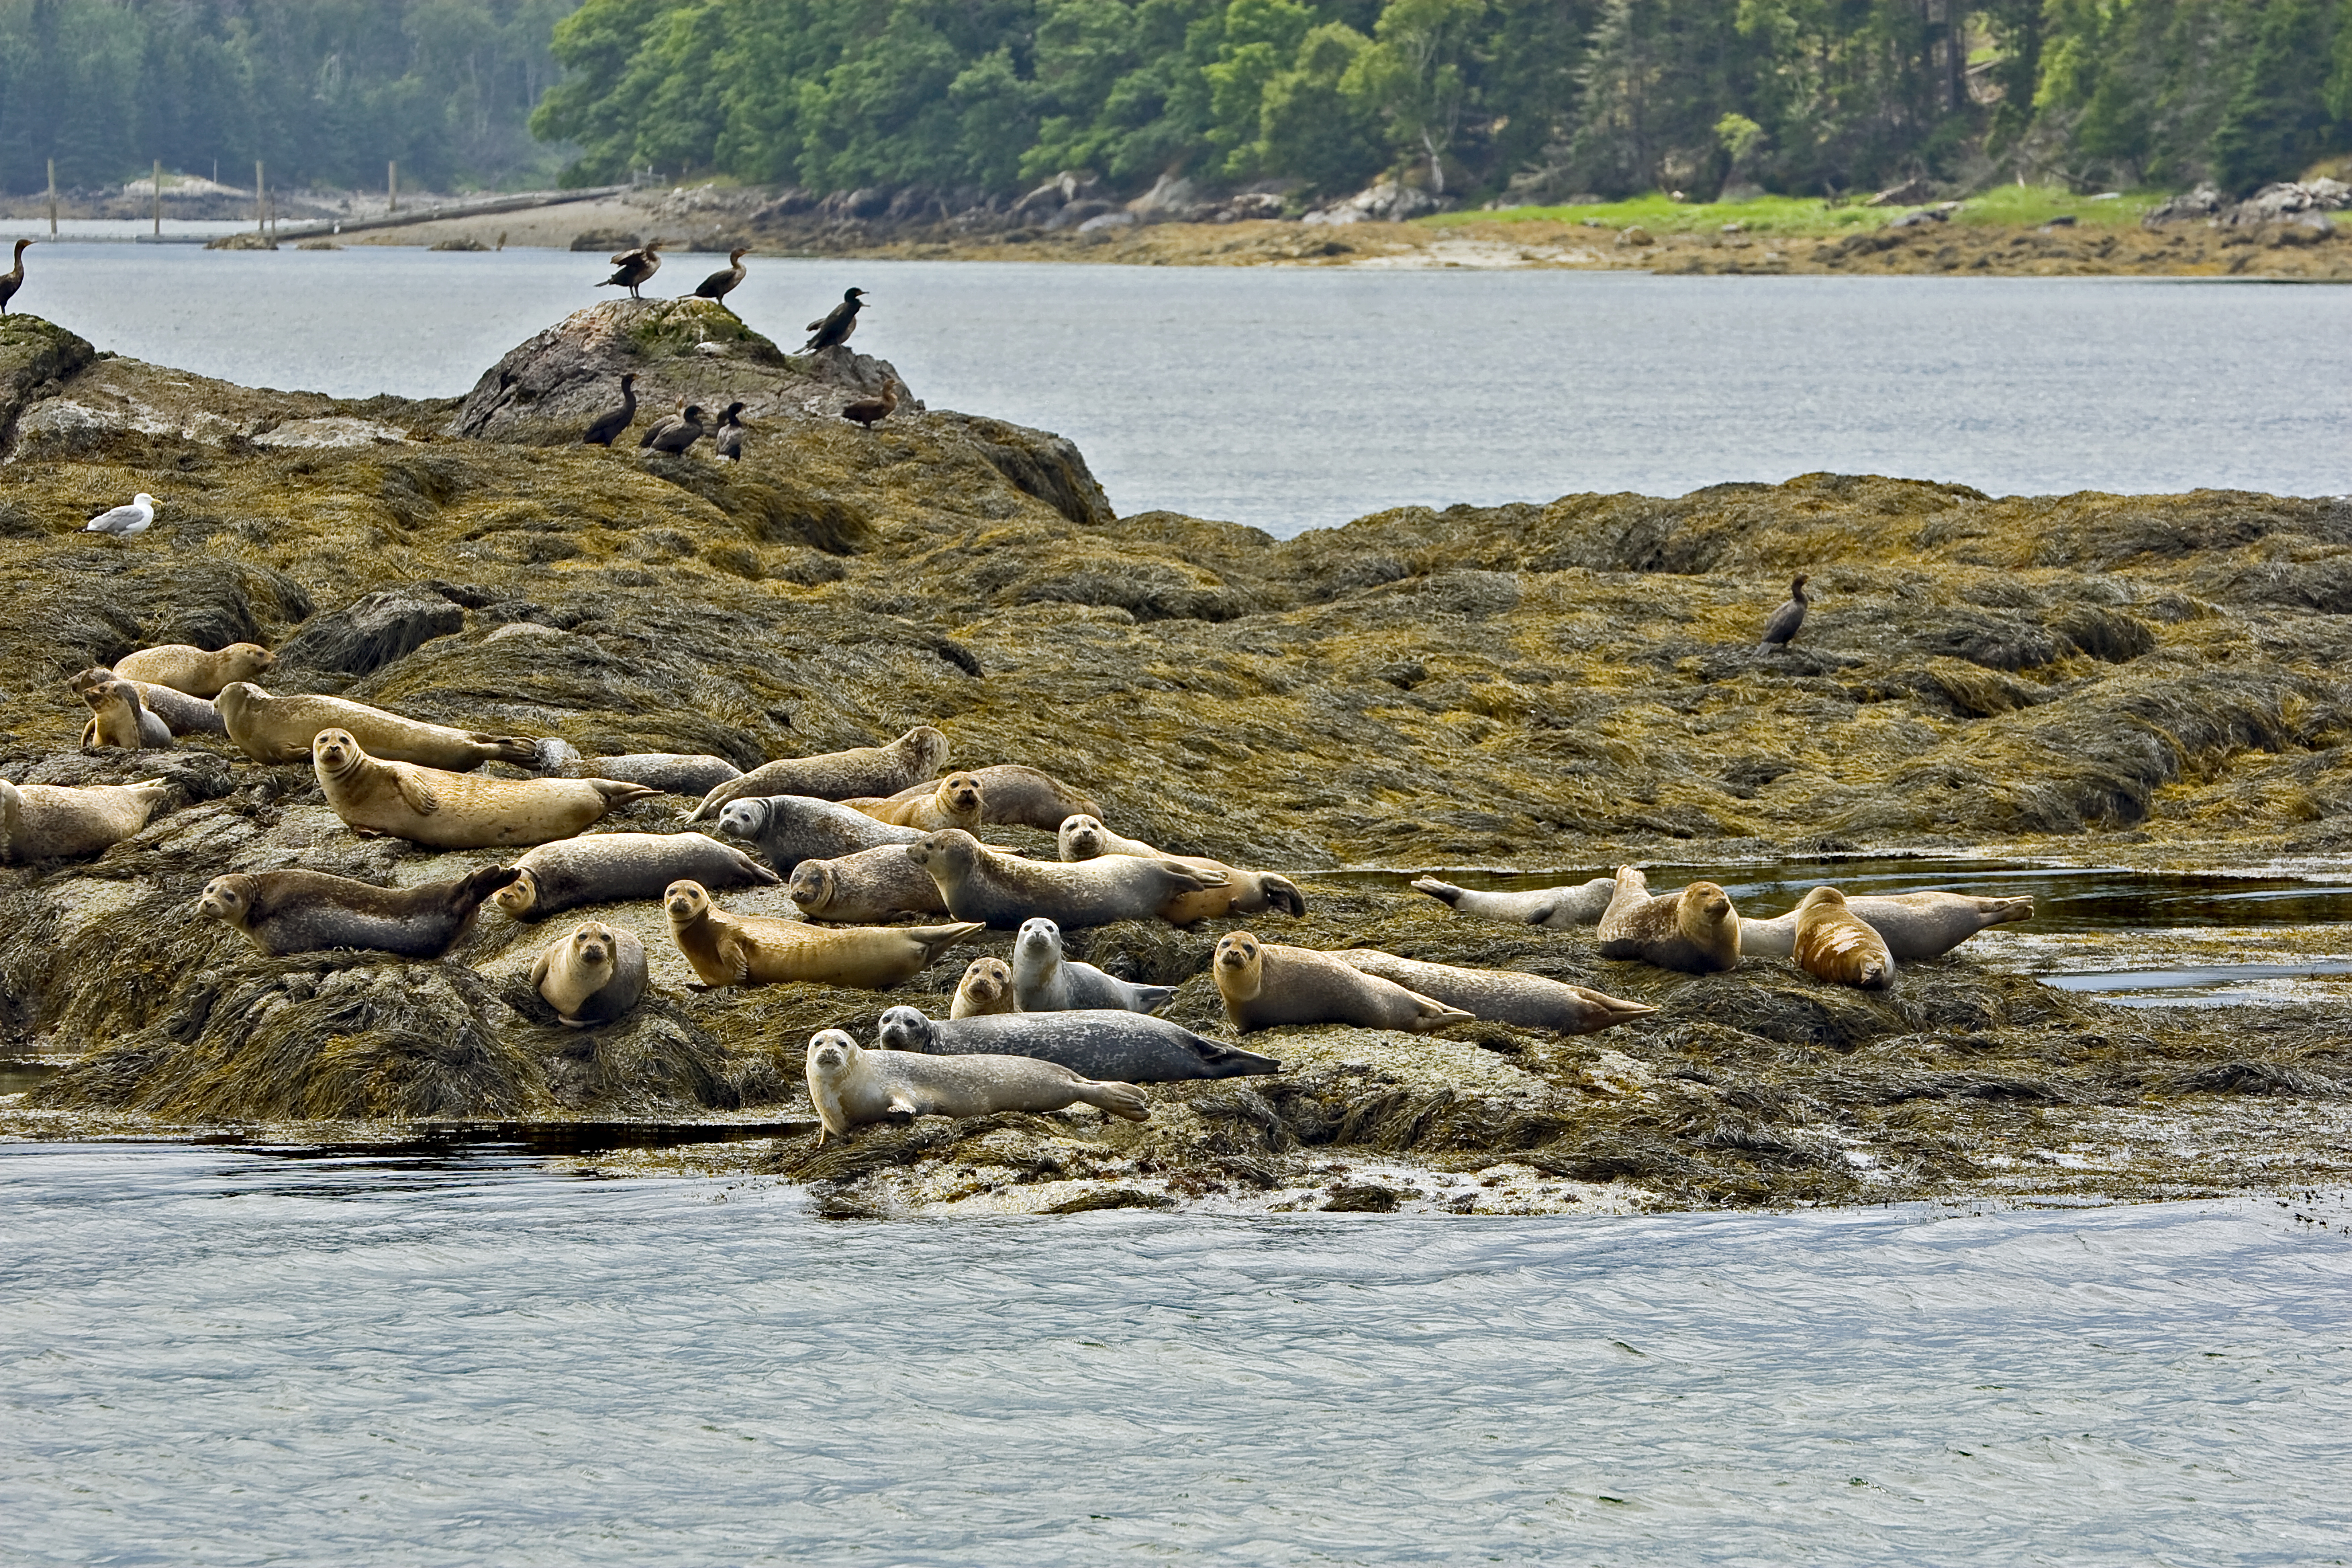 The seals on the beach